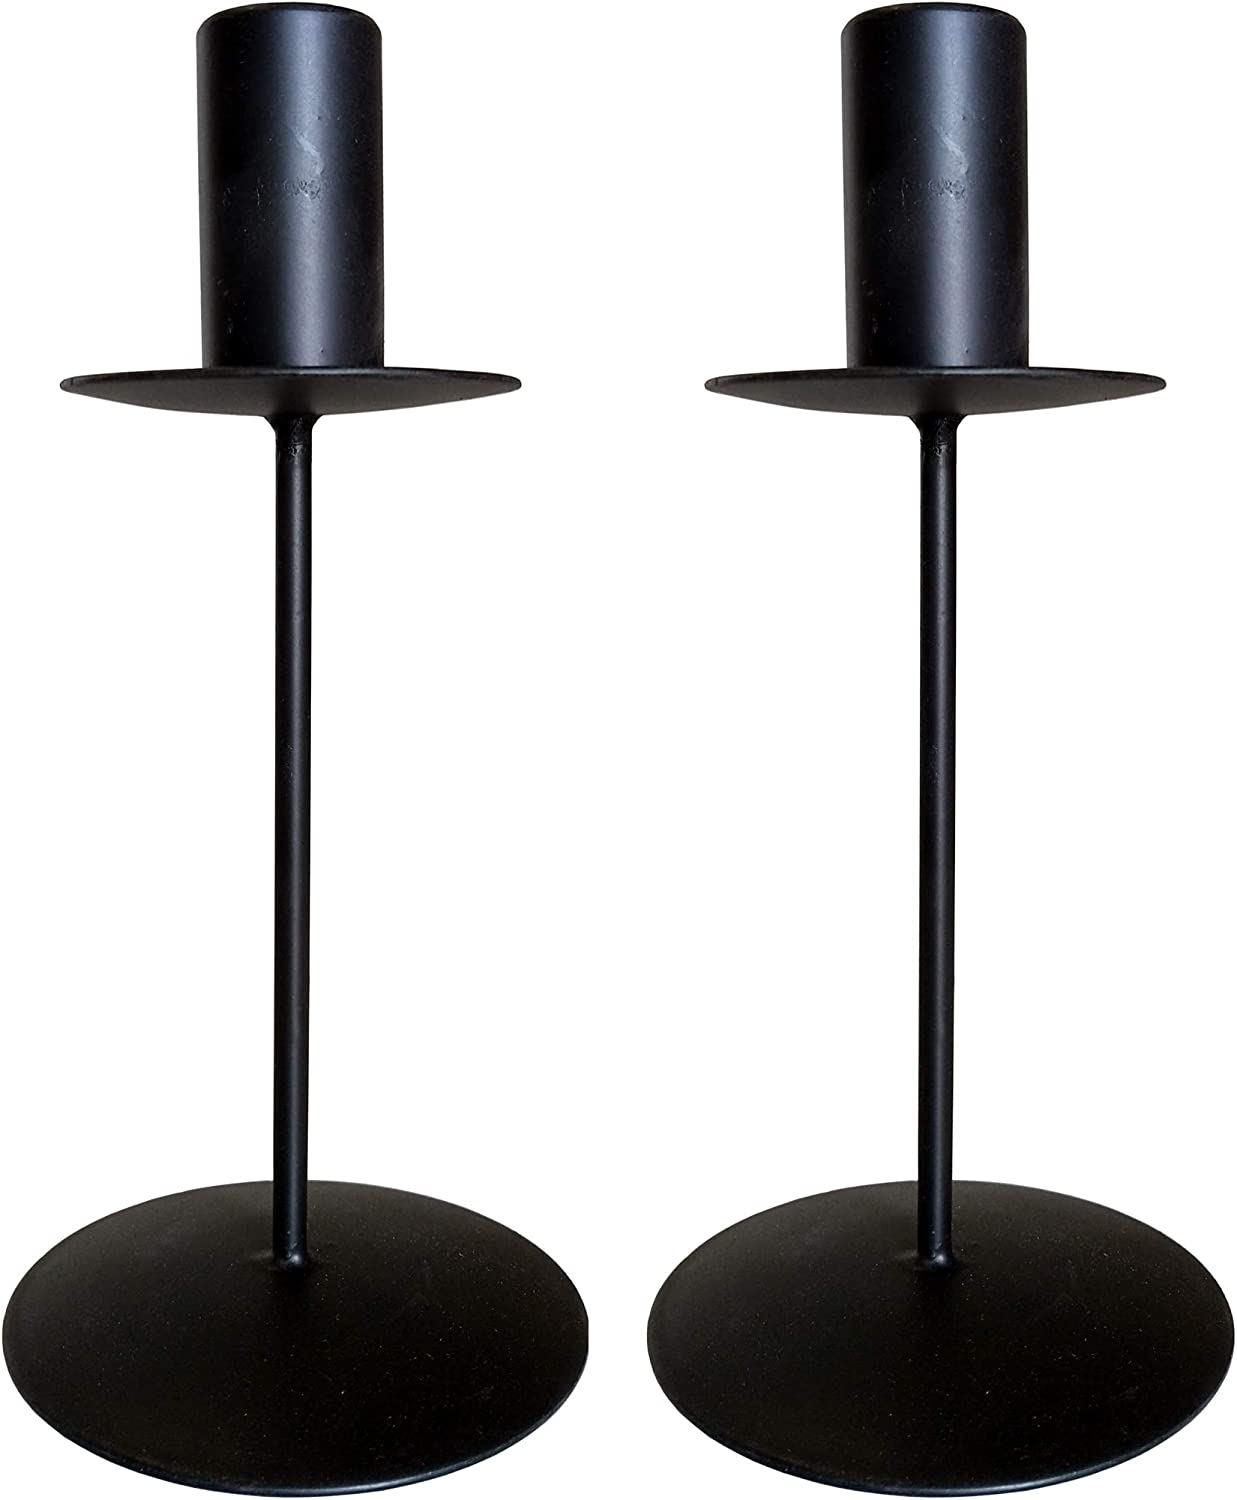 Great for Weddings Party Spa Gifts W5 Hosley Set of 2 Taper Metal Candle Holders 6 Inch High